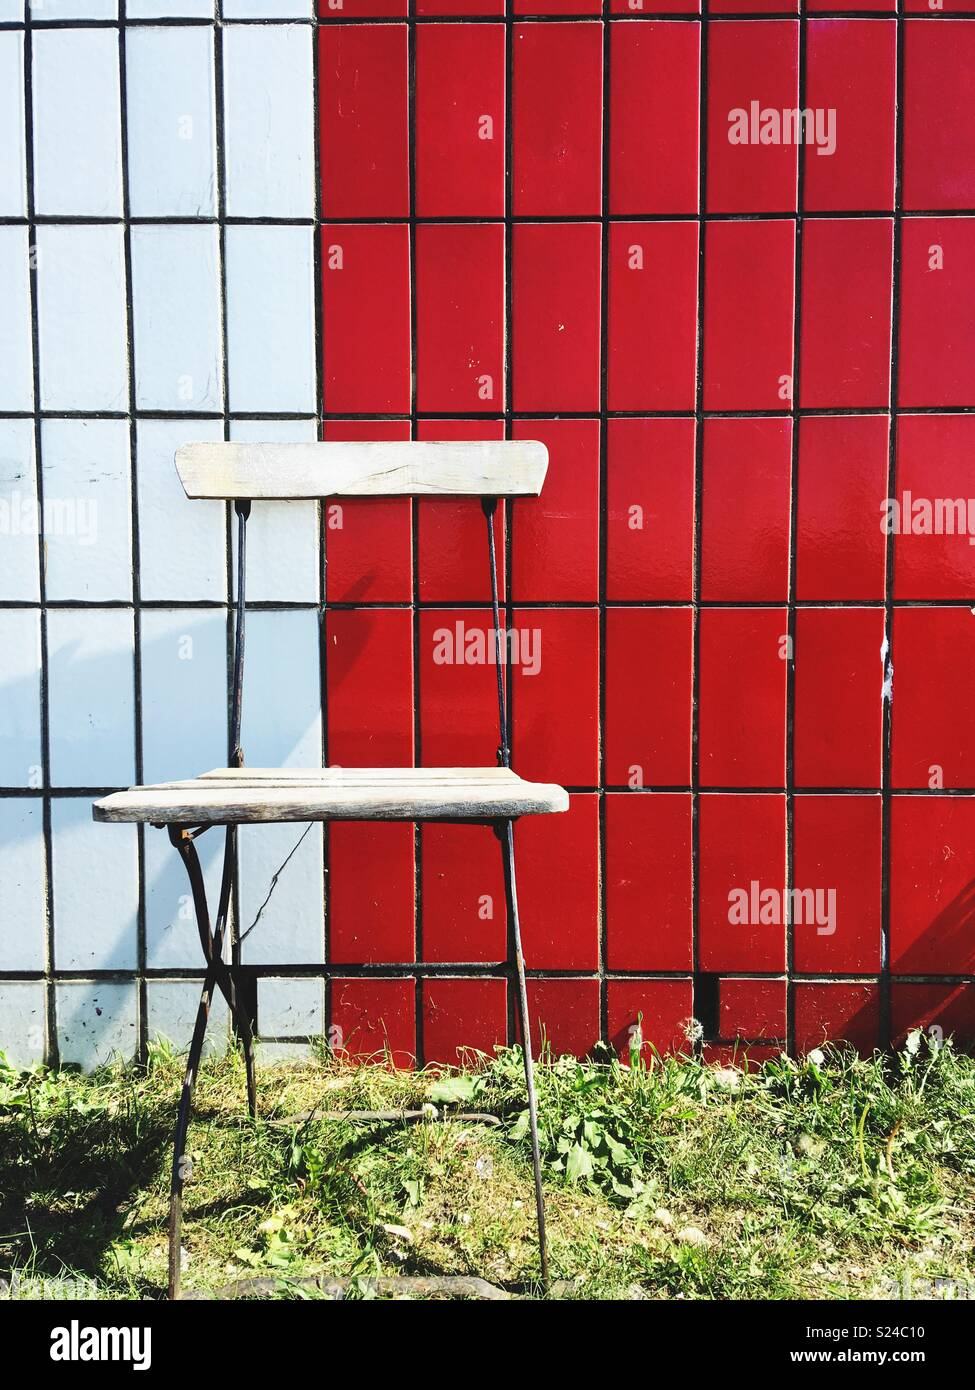 A wooden garden chair against a red and white tile wall - Stock Image